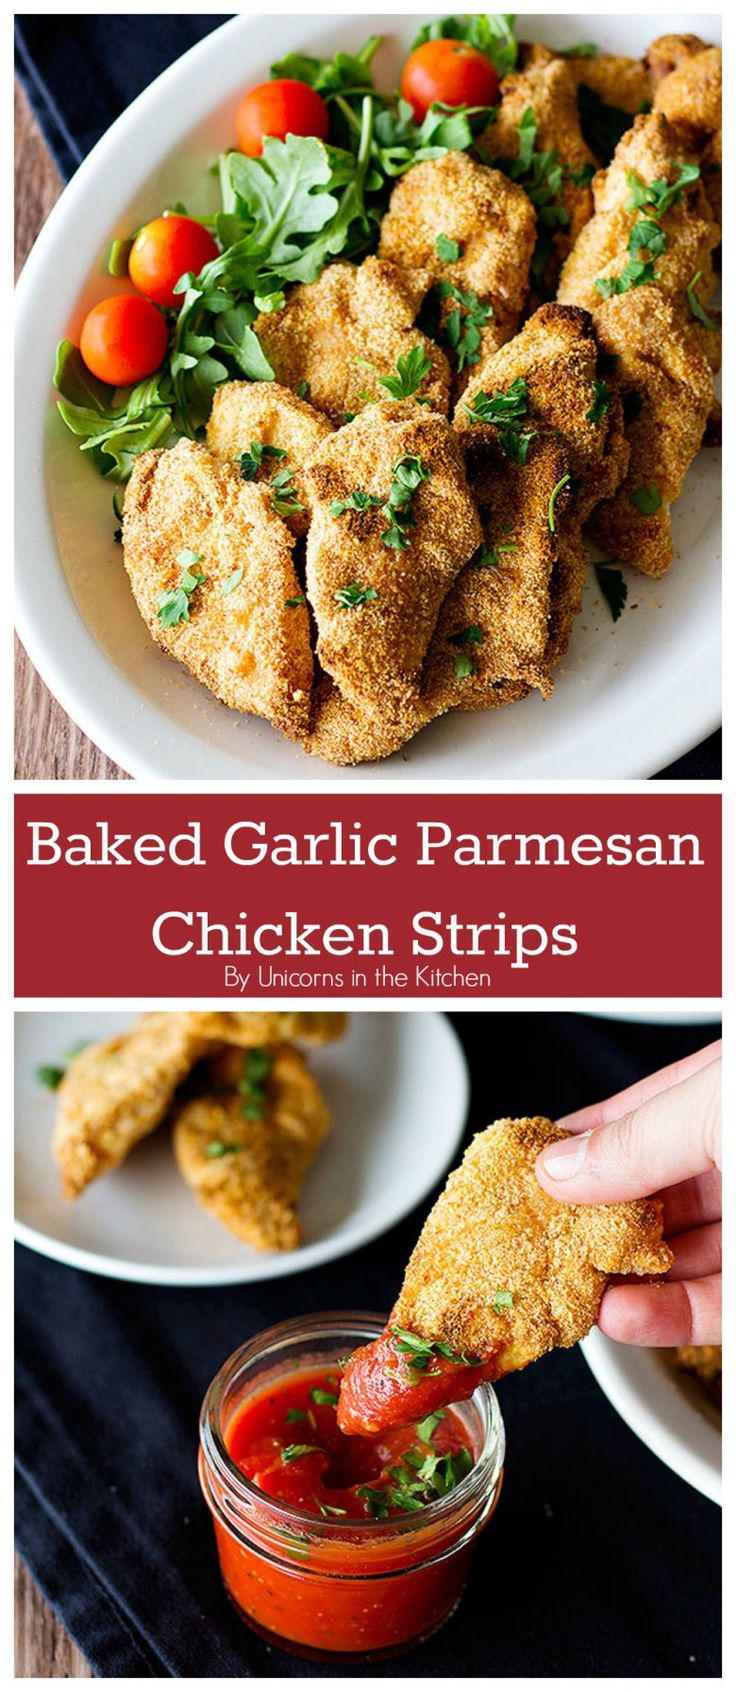 These Baked Garlic Parmesan Chicken Strips are easy and super delicious. A healthier version of one of the best loved foods out there!